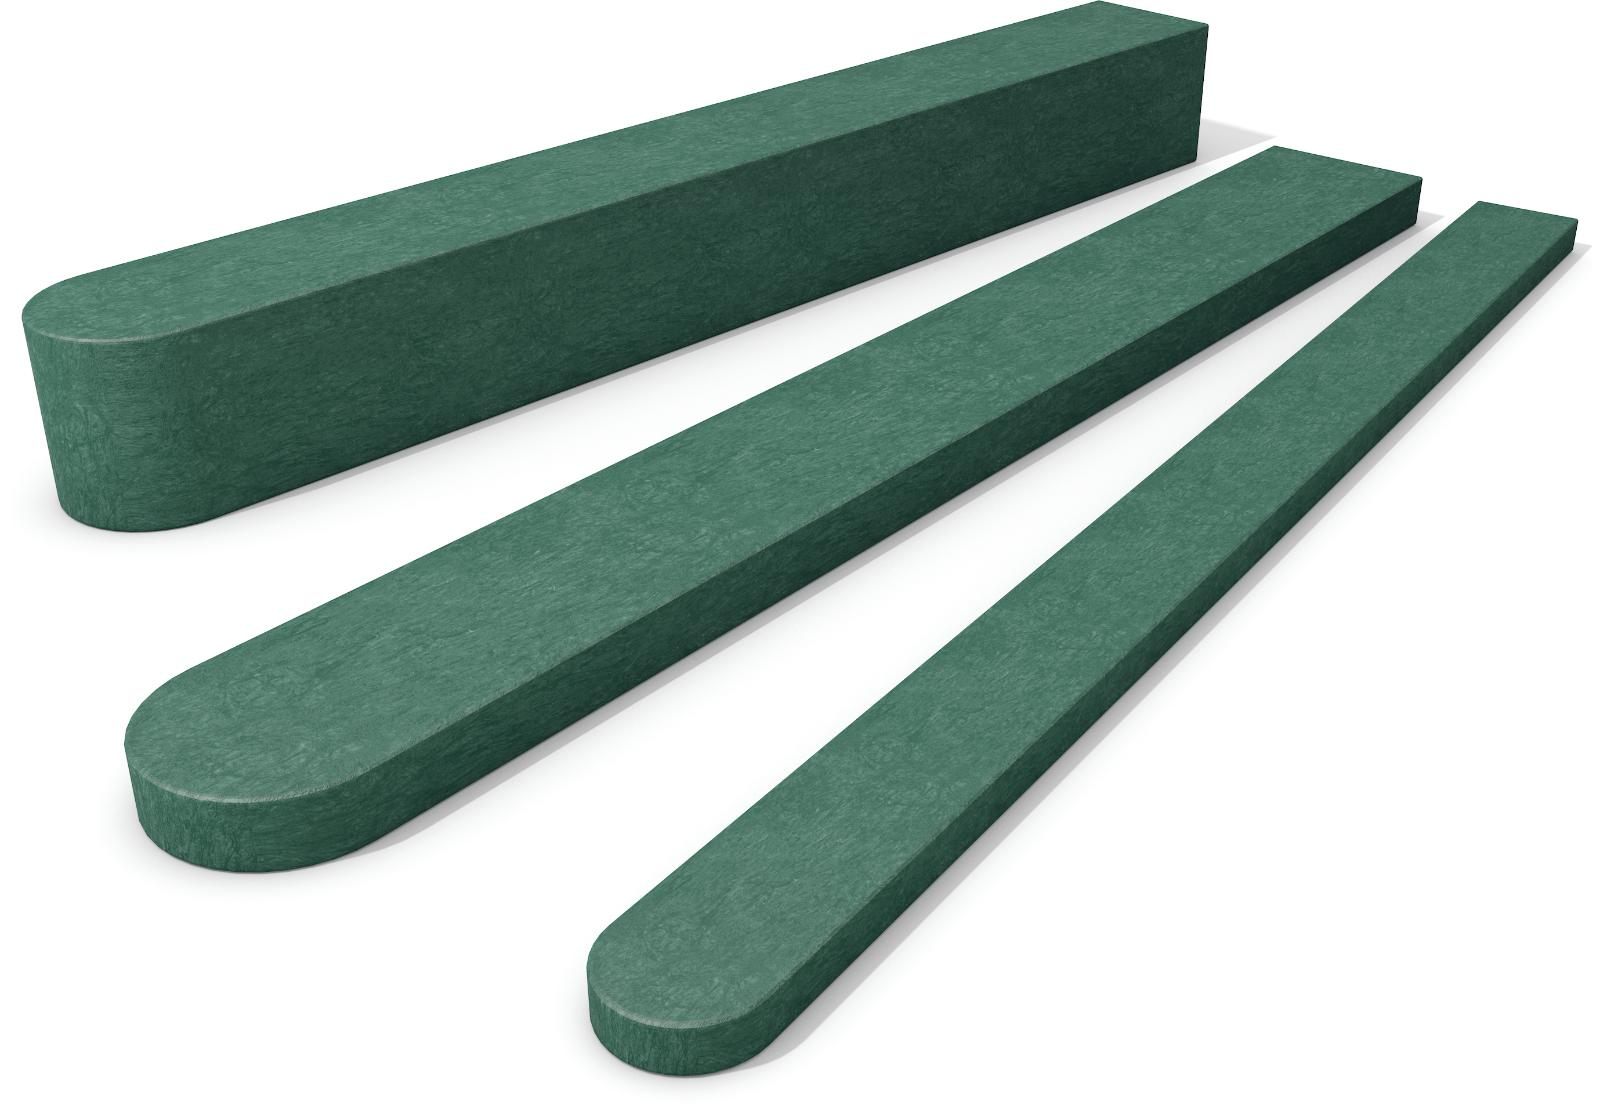 Fence Post with Round End Green 90mm x 90mm x 750mm